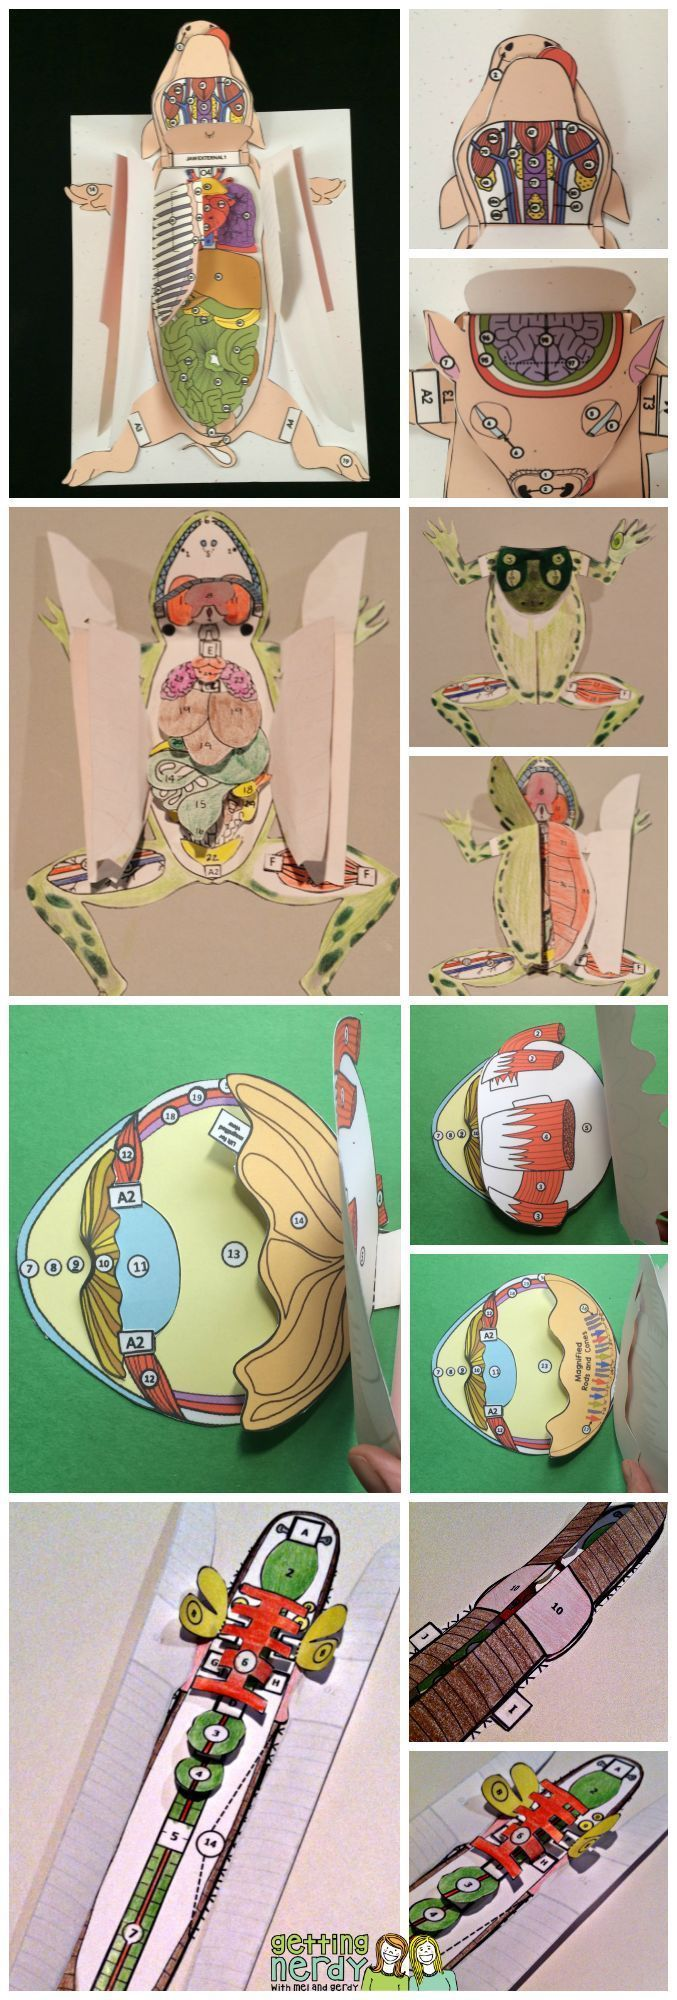 Dissection models for life science and biology - why they're perfect for your life science or biology classroom. Fetal pig, grass frog, cat, crawfish, sheep or cow eye, earthworm, and more! Read to find out how to make the most out of these 3-d paper models!